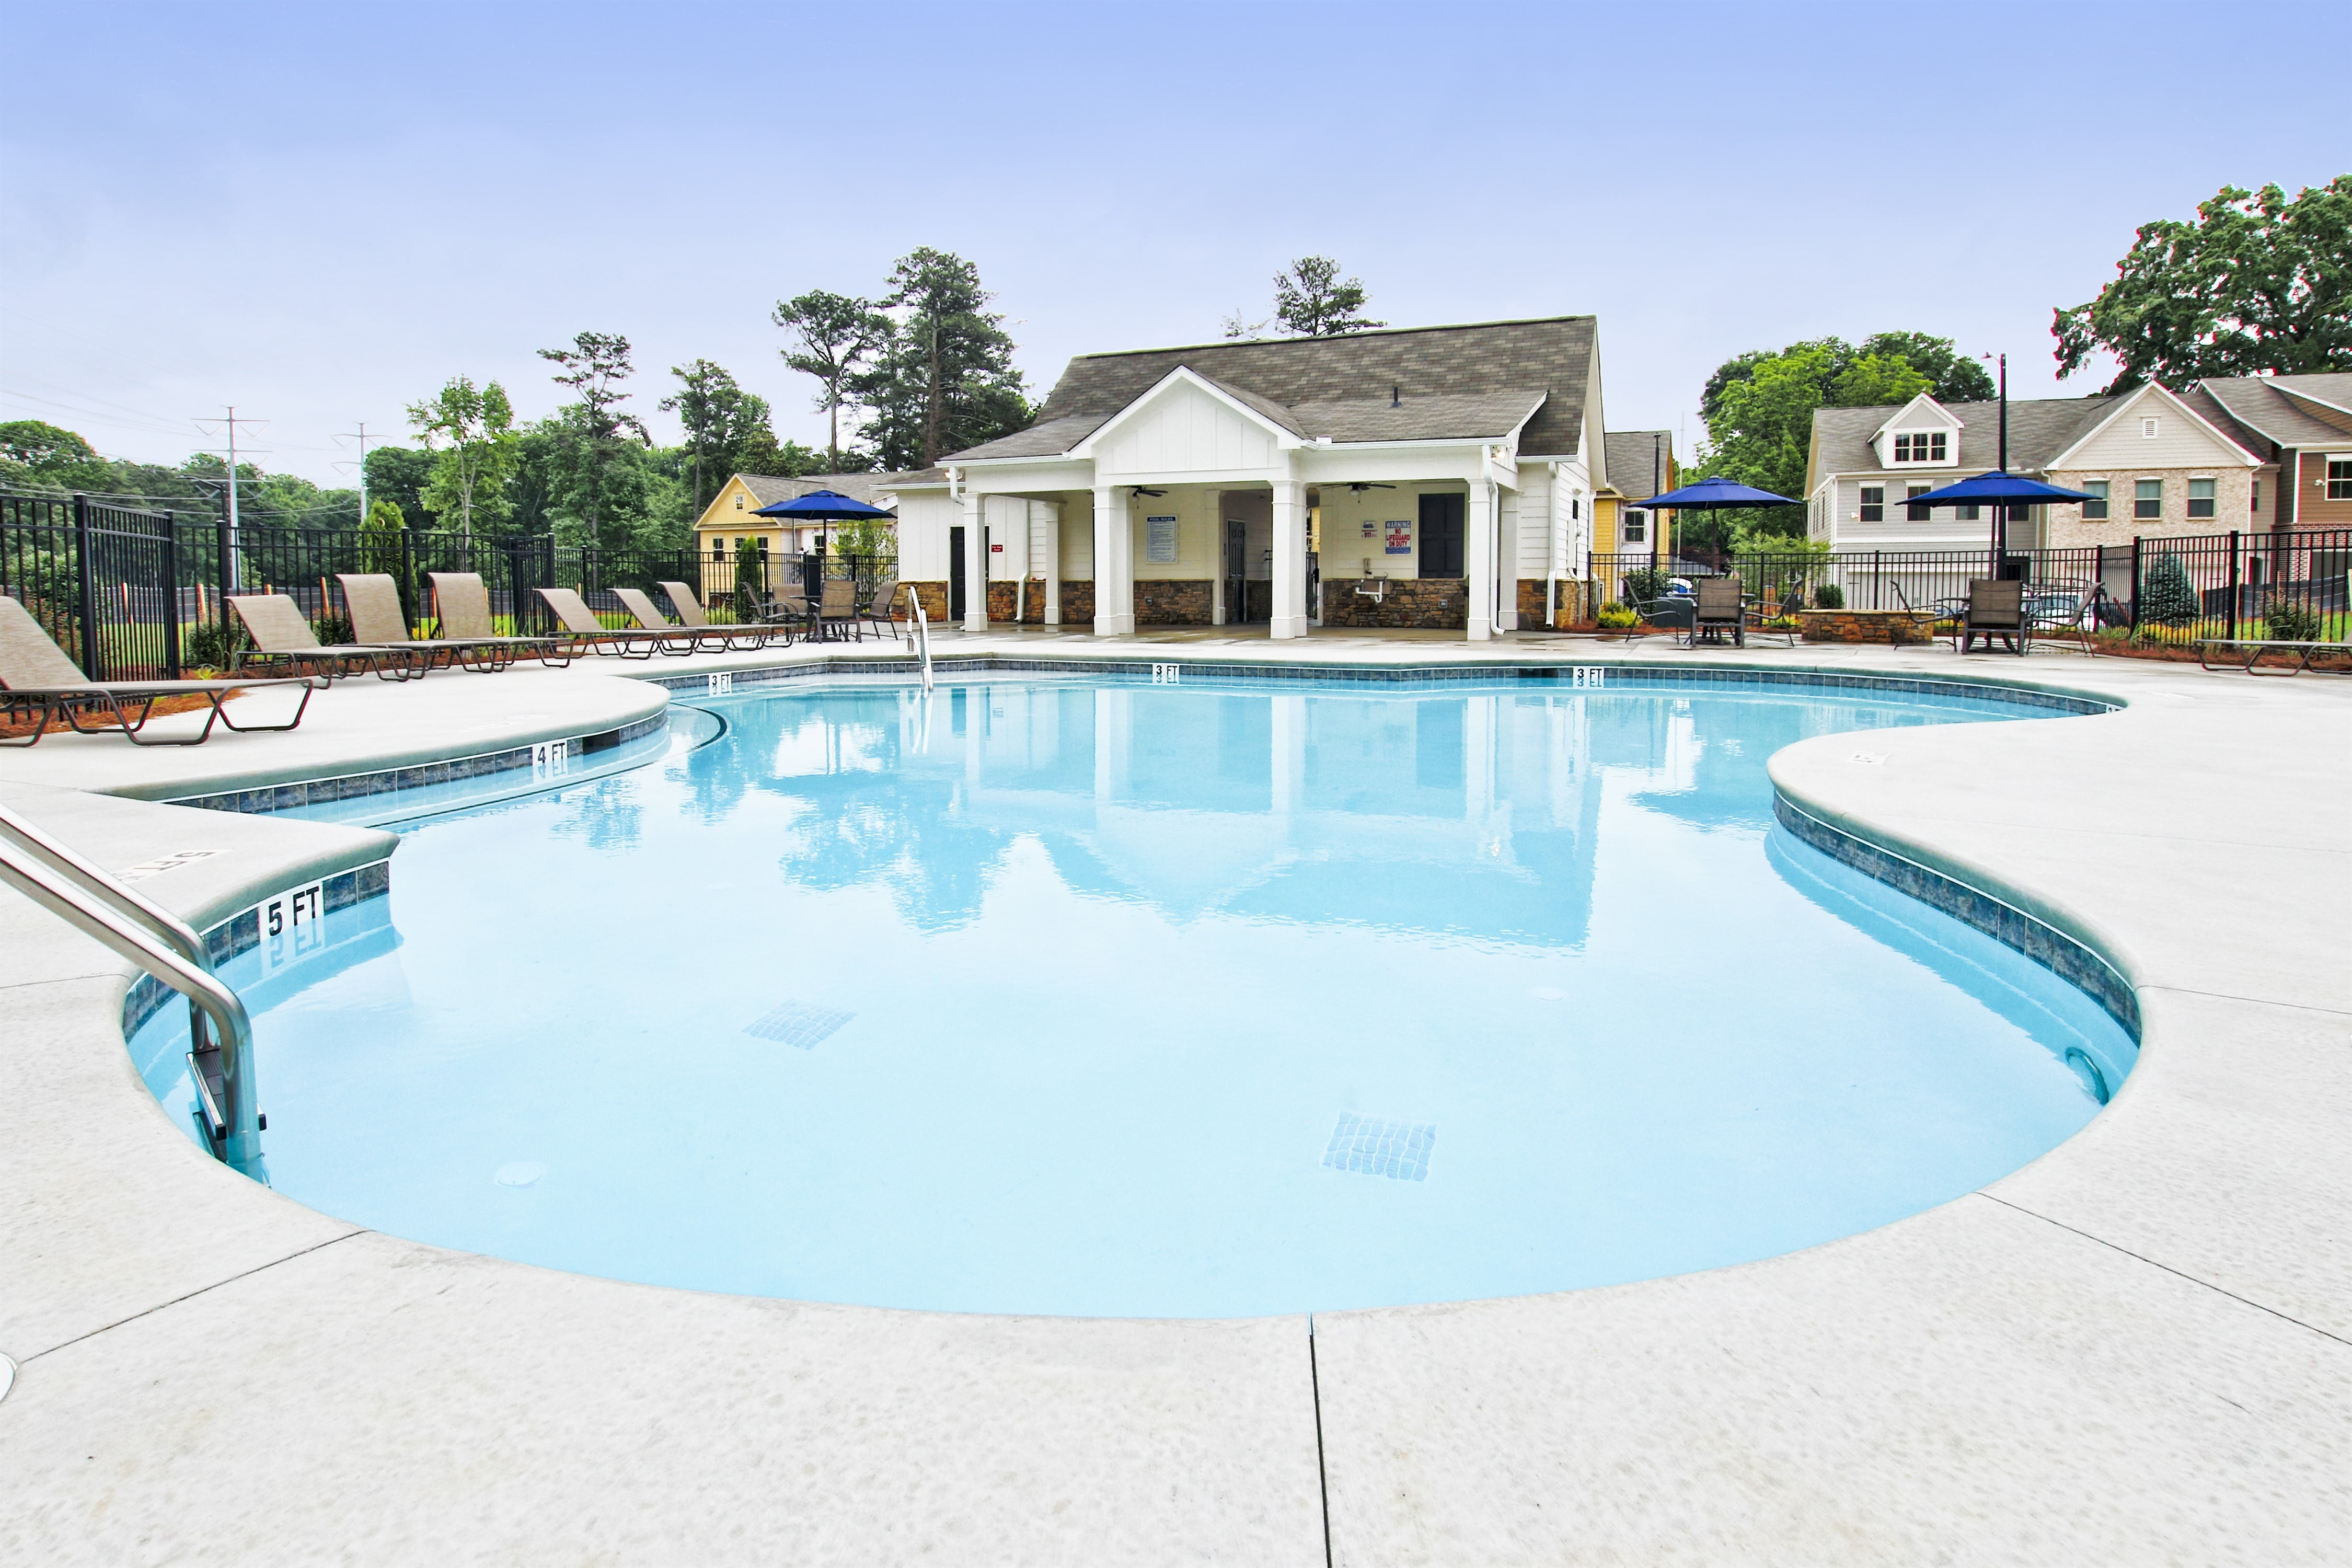 Edgemoore at Milford new home amenities